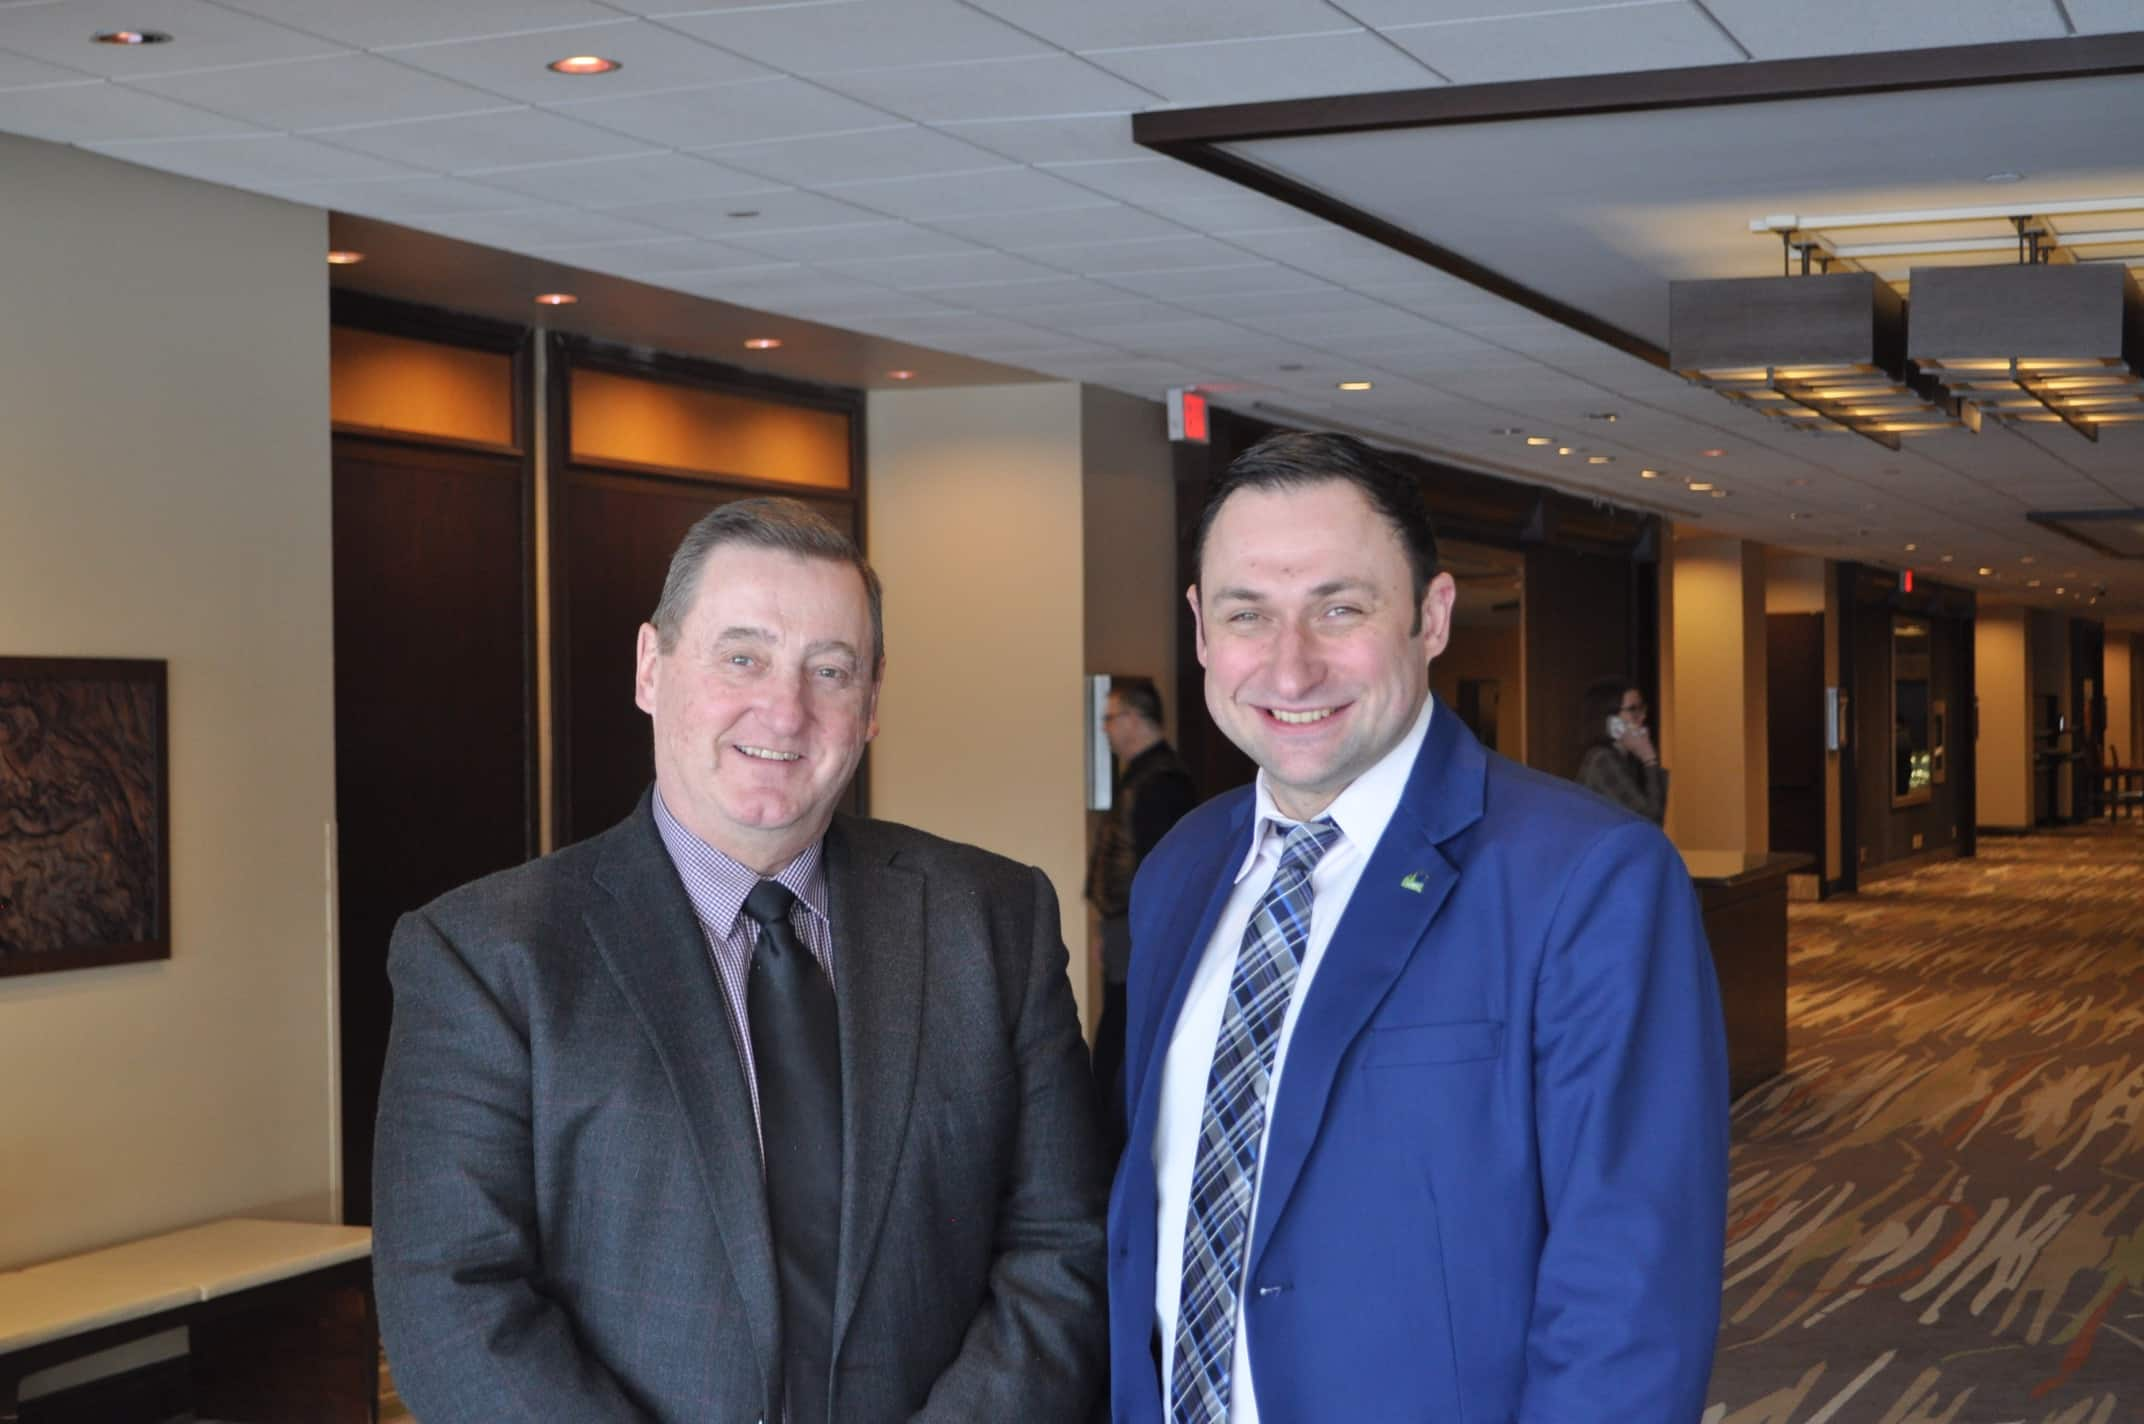 Loren Schinkel (left), reeve of the Rural Municipality of Lac du Bonnet, is in Ottawa with Denys Volkov, executive director of the Association of Manitoba Municipalities, for a meeting with federal officials on the contract that governs how RCMP police most of the province. The two want more co-ordination to deal with the rise of rural crime in Manitoba. (Dylan Robertson / Winnipeg Free Press)